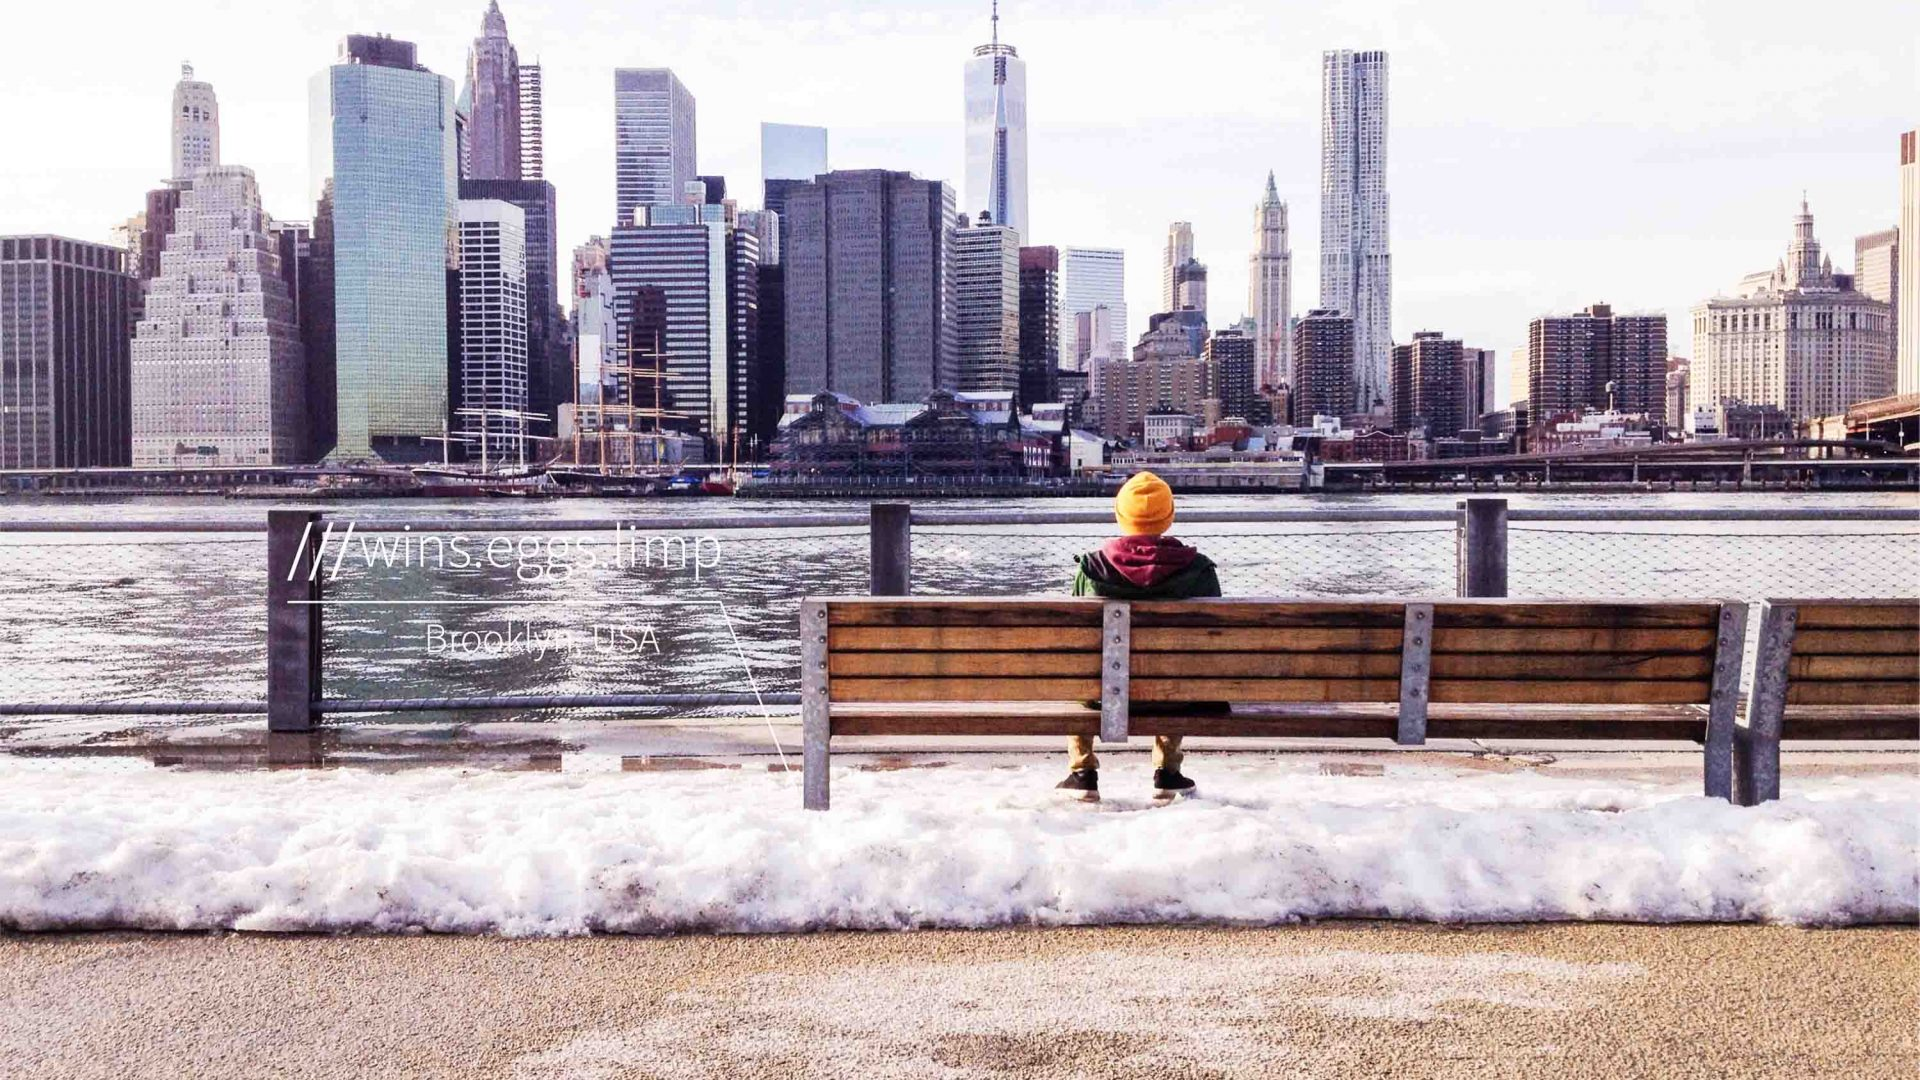 what3words system works globally. Here, it generates a three-word addresses for the spot where this person sits to look at the Manhattan skyline in New York.